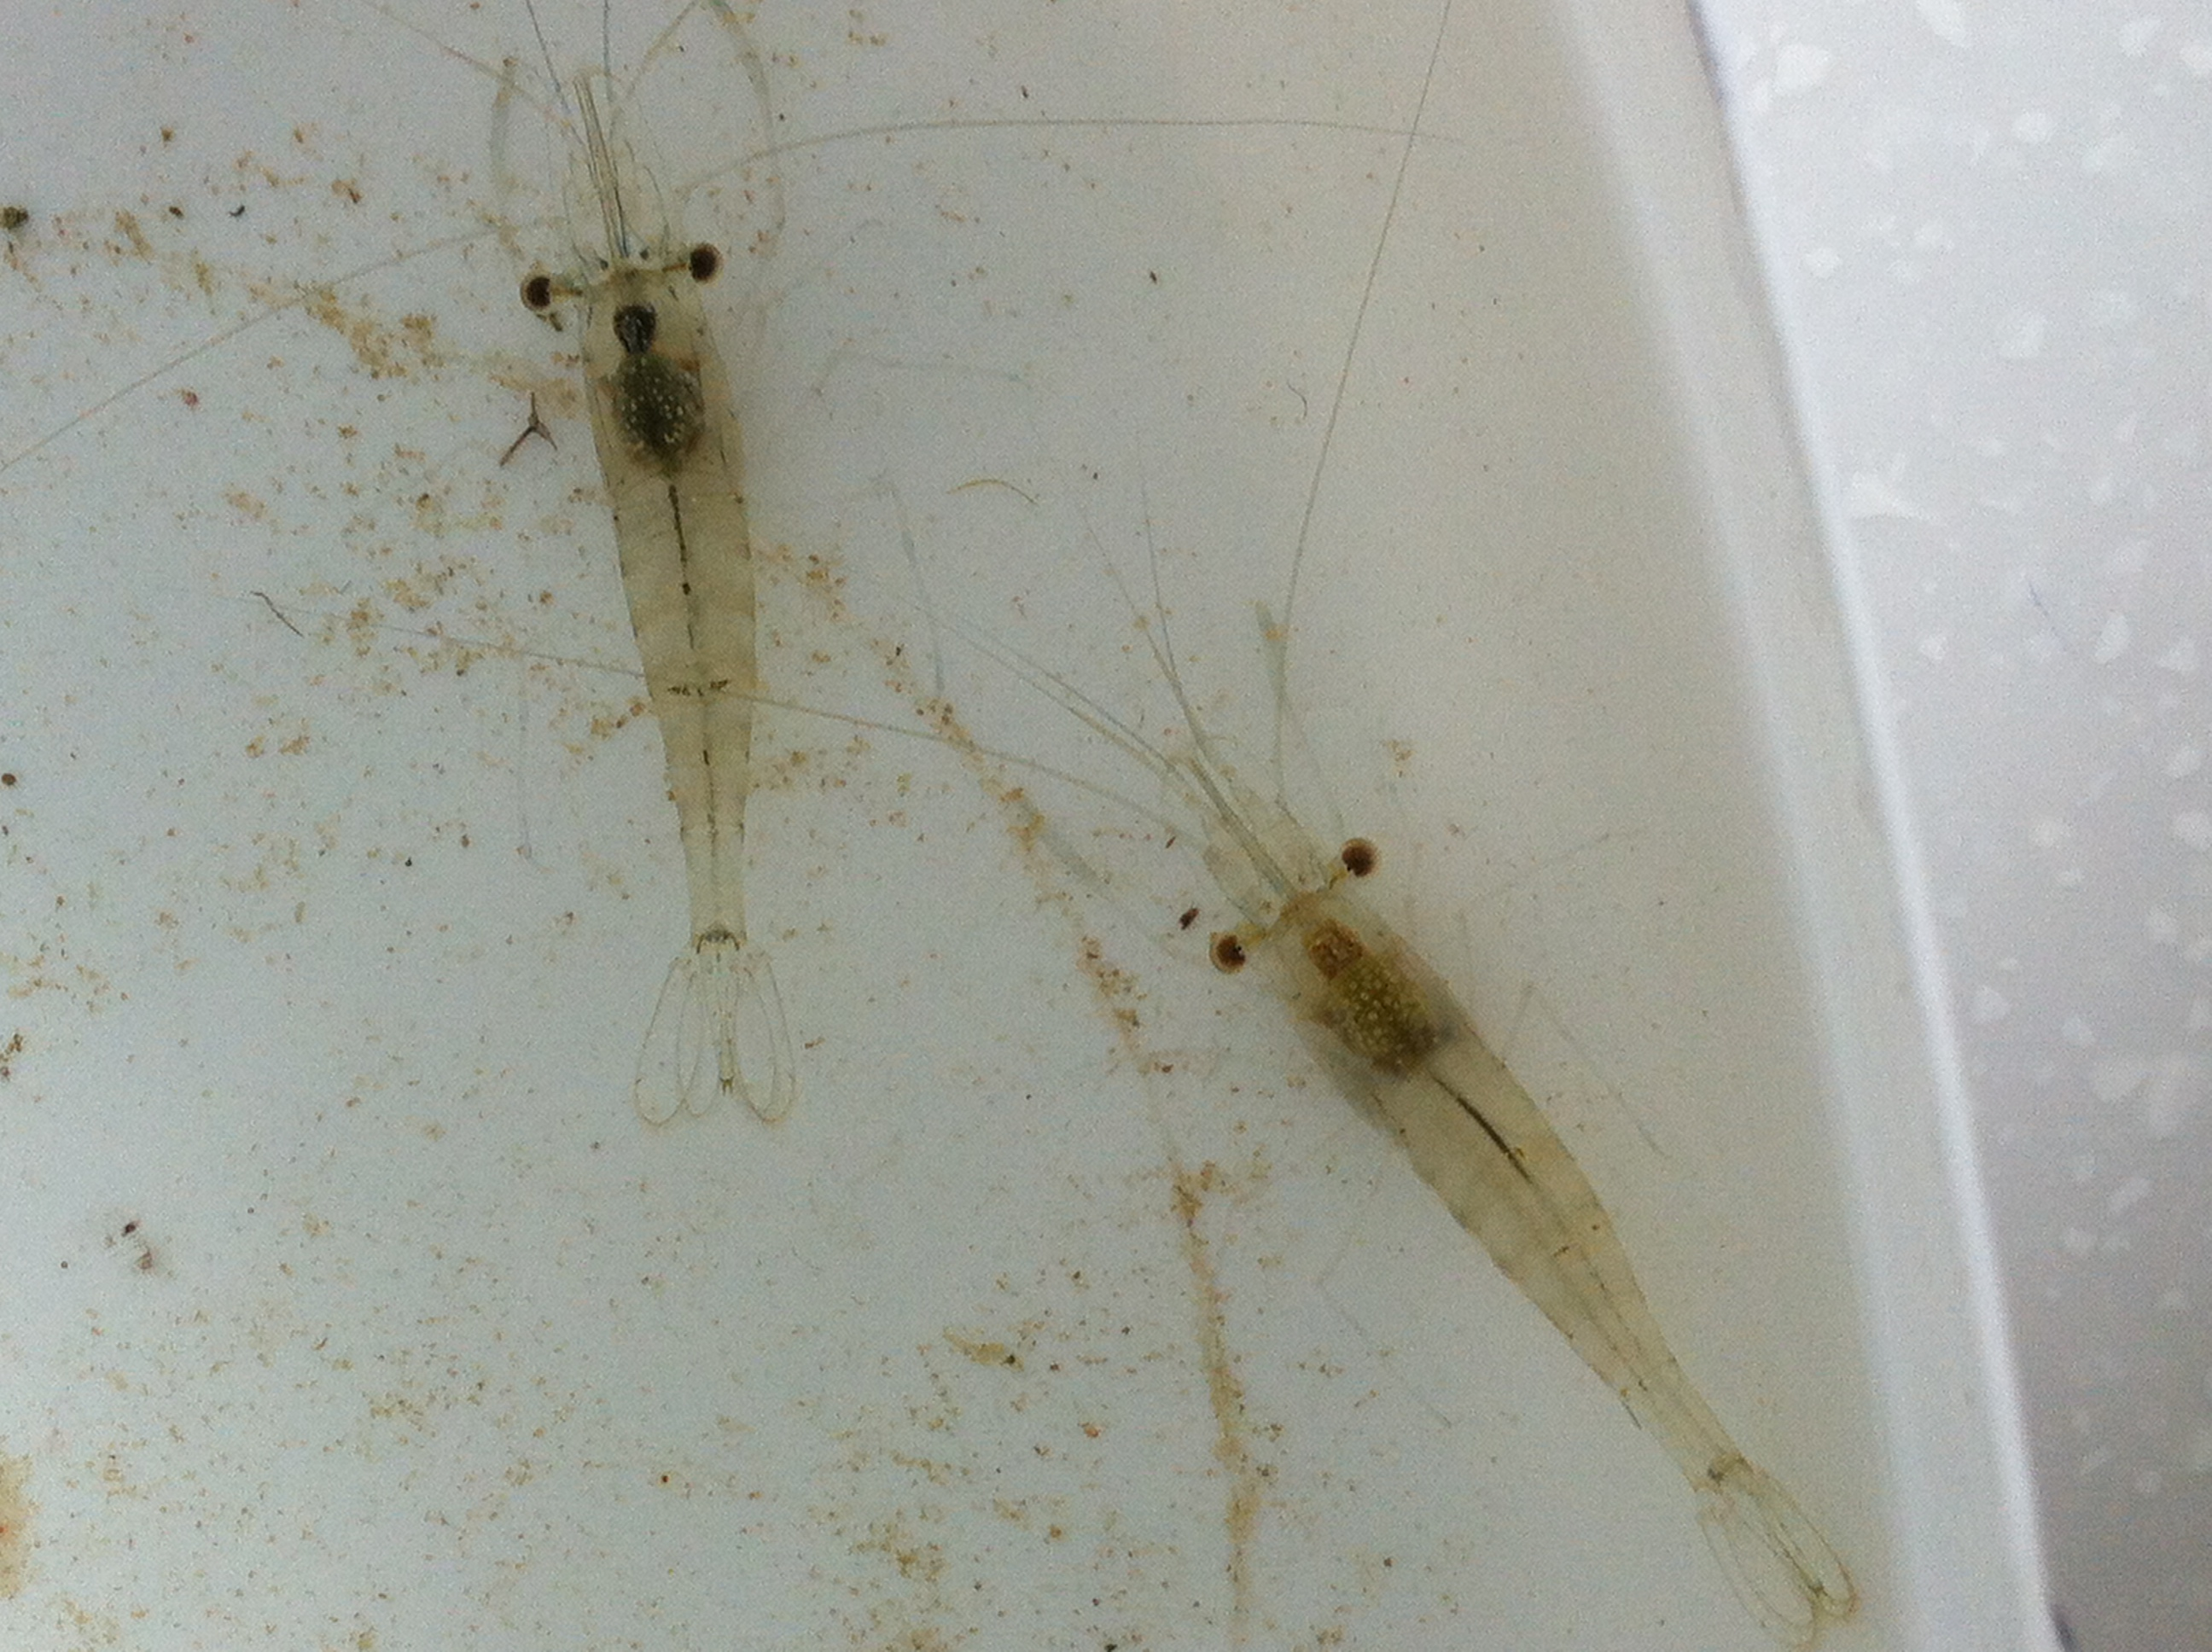 Barred estuarine shrimp